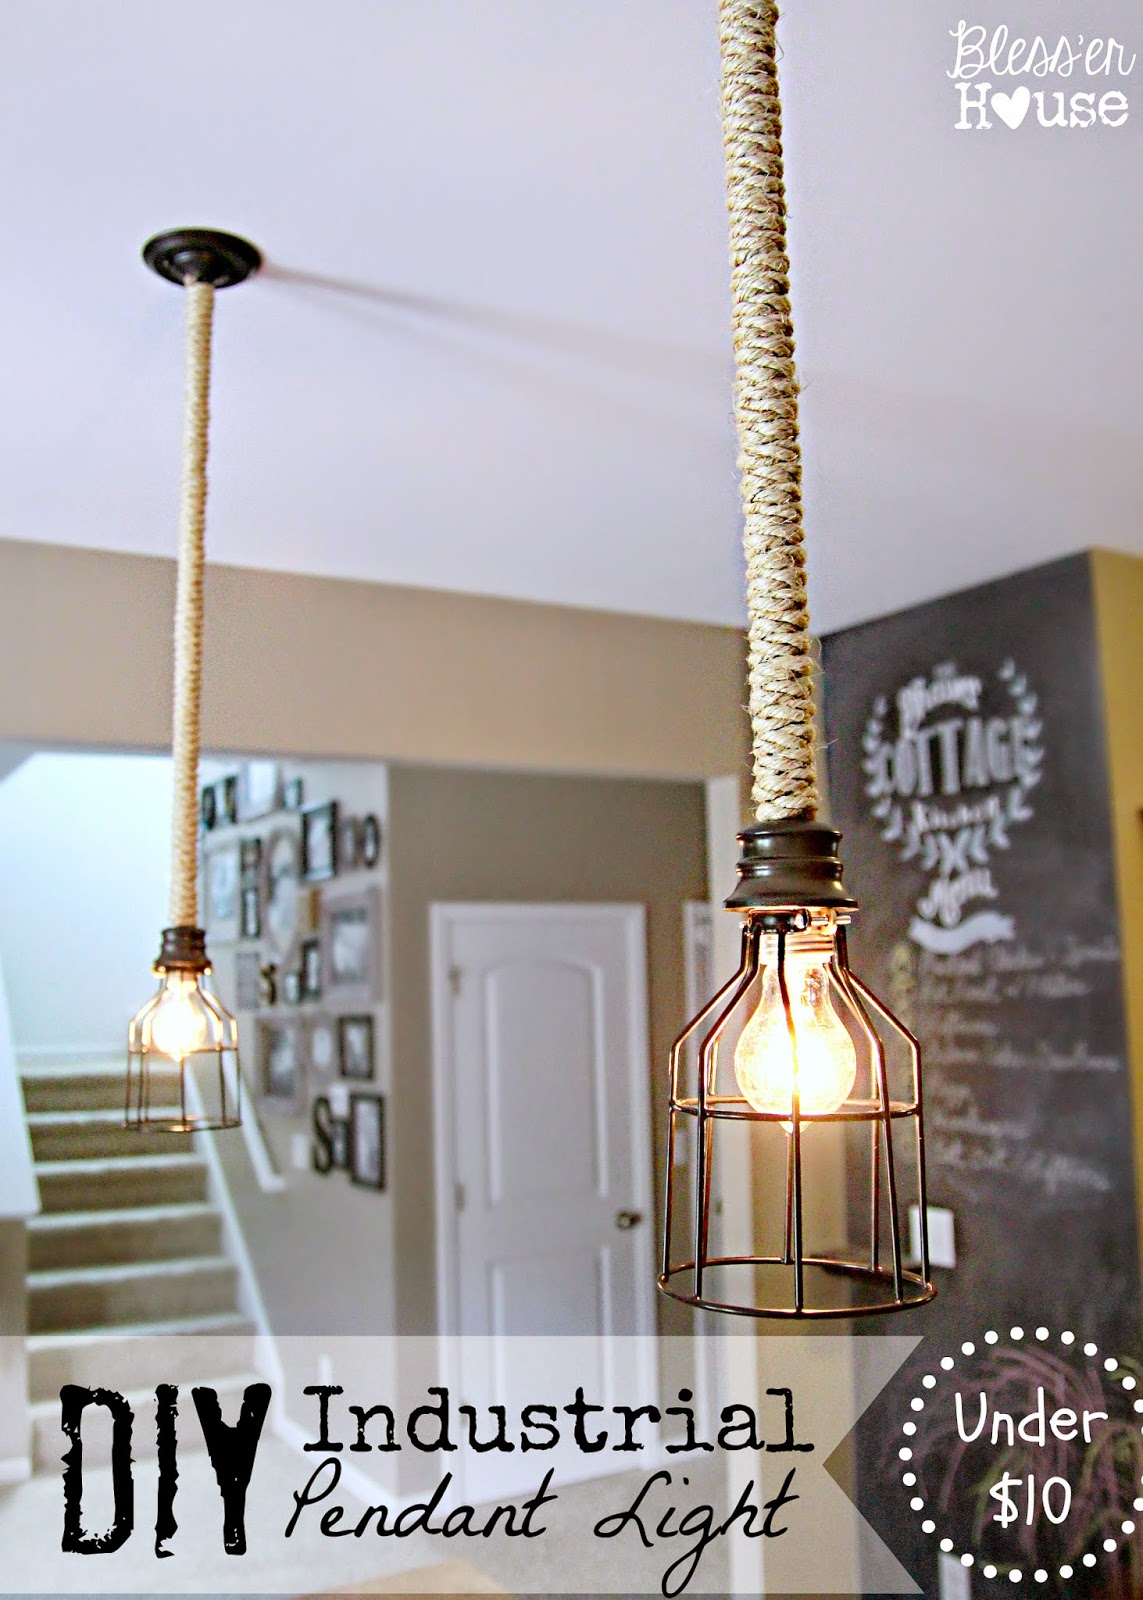 Diy industrial pendant light for under 10 blesser house diy industrial pendant light blesser house mozeypictures Image collections